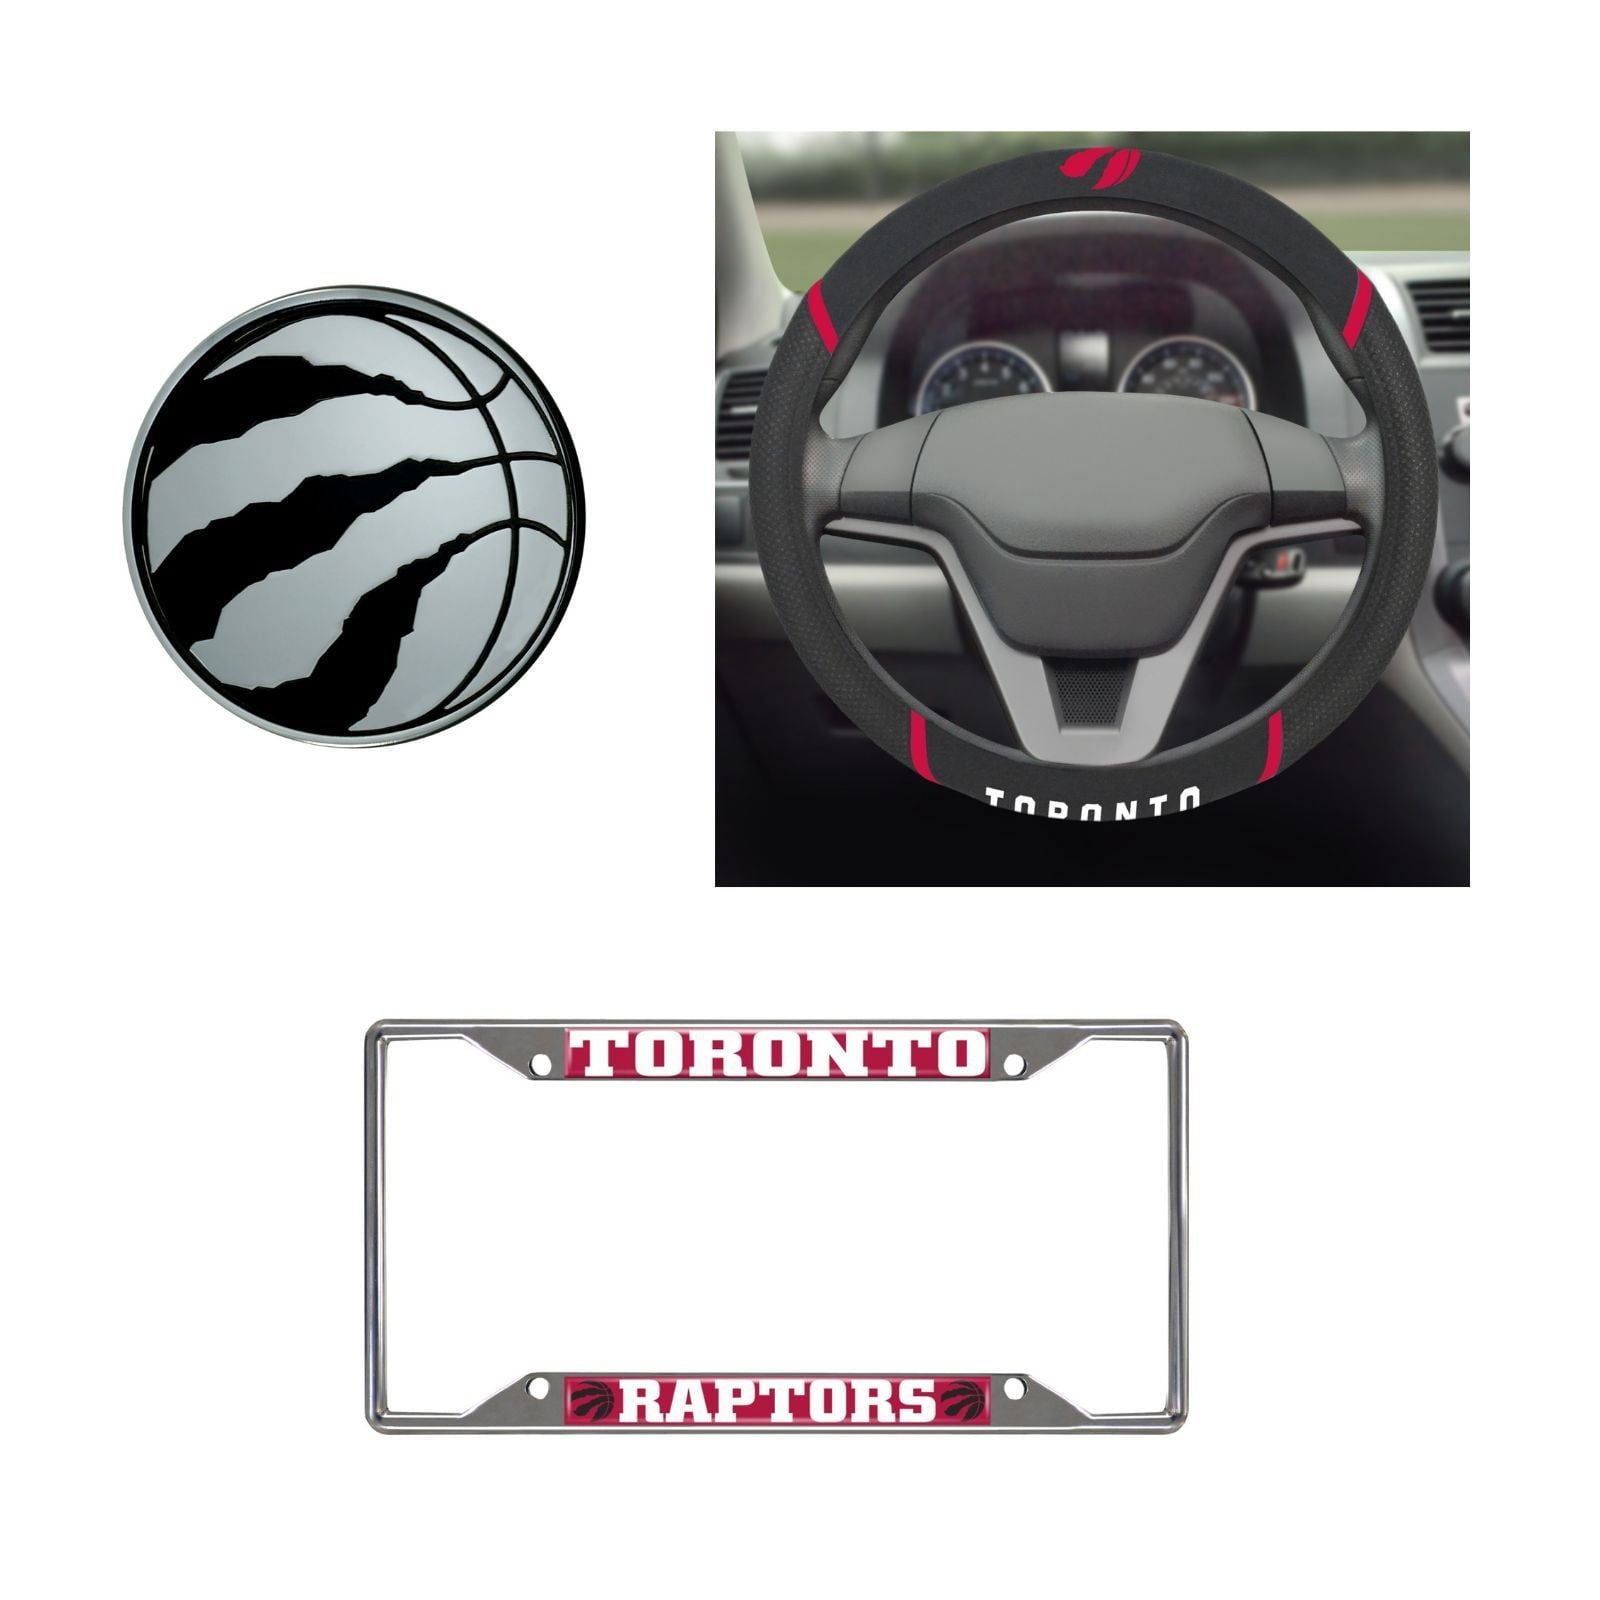 Toronto Raptors Steering Wheel Cover, License Plate Frame, 3D Chrome Emblem